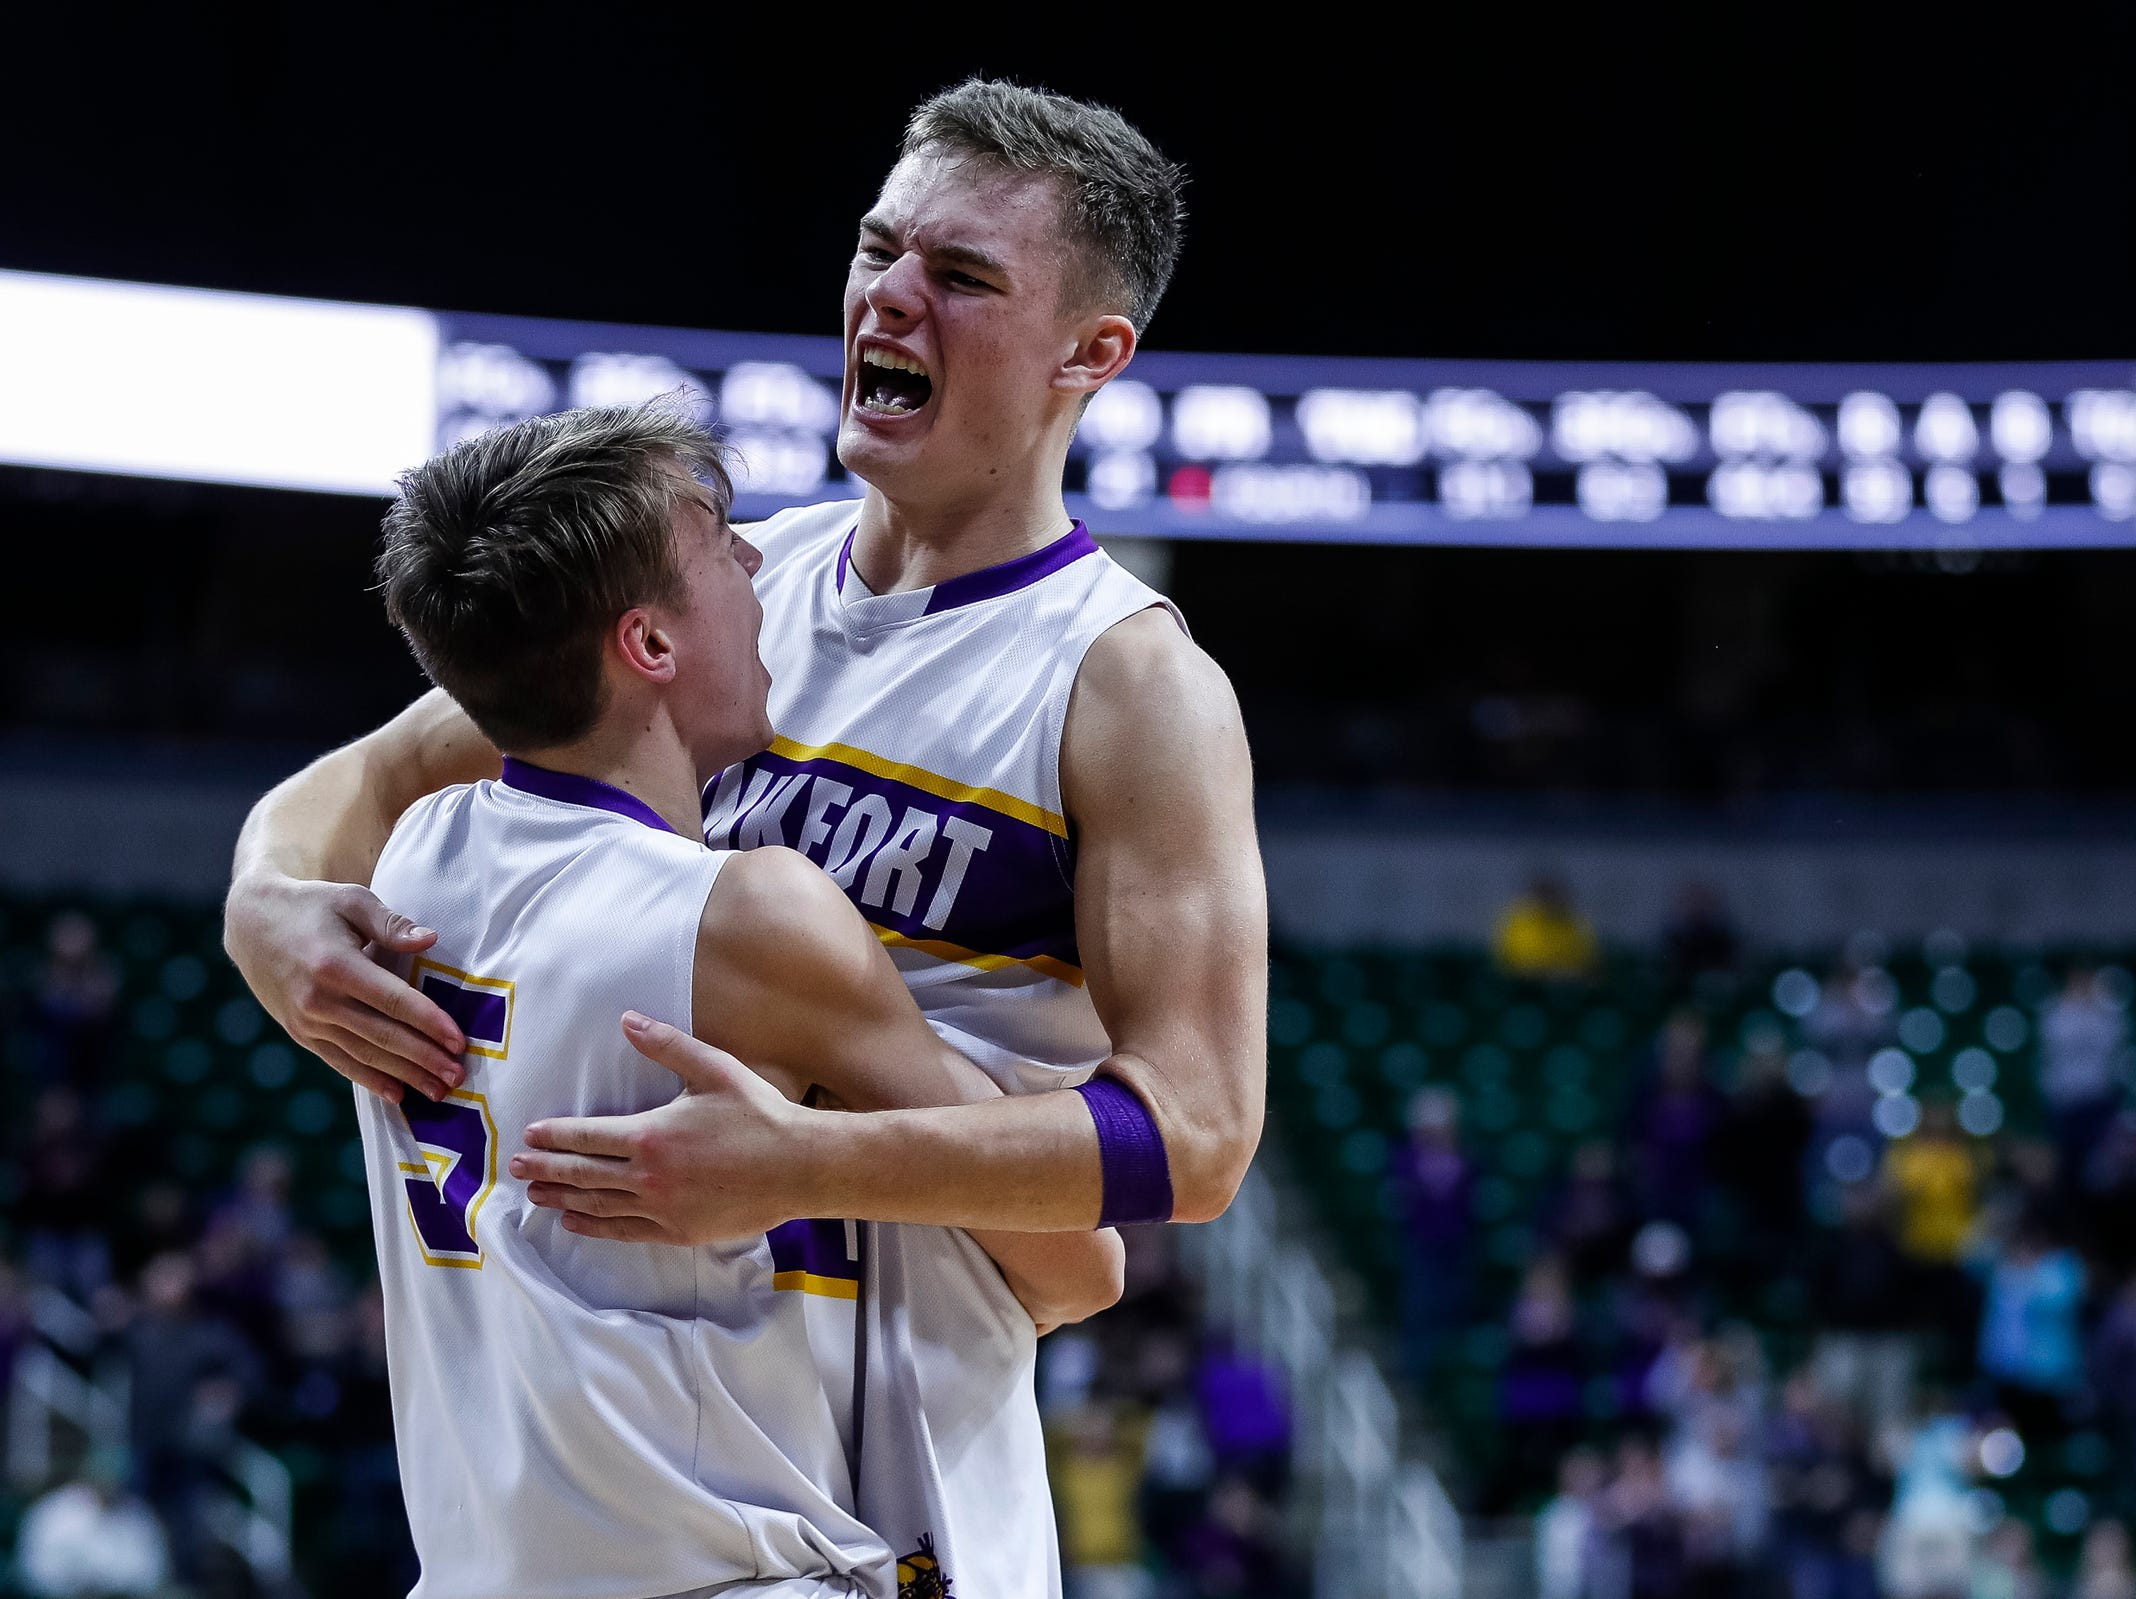 Frankfort's Conner Smith (15) and Luke Hammon (5) celebrate the Panthers' 44-43 win over Wyoming Tri-unity Christian during the second half of MHSAA Division 4 semifinal at the Breslin Center in East Lansing, Thursday, March 14, 2019.